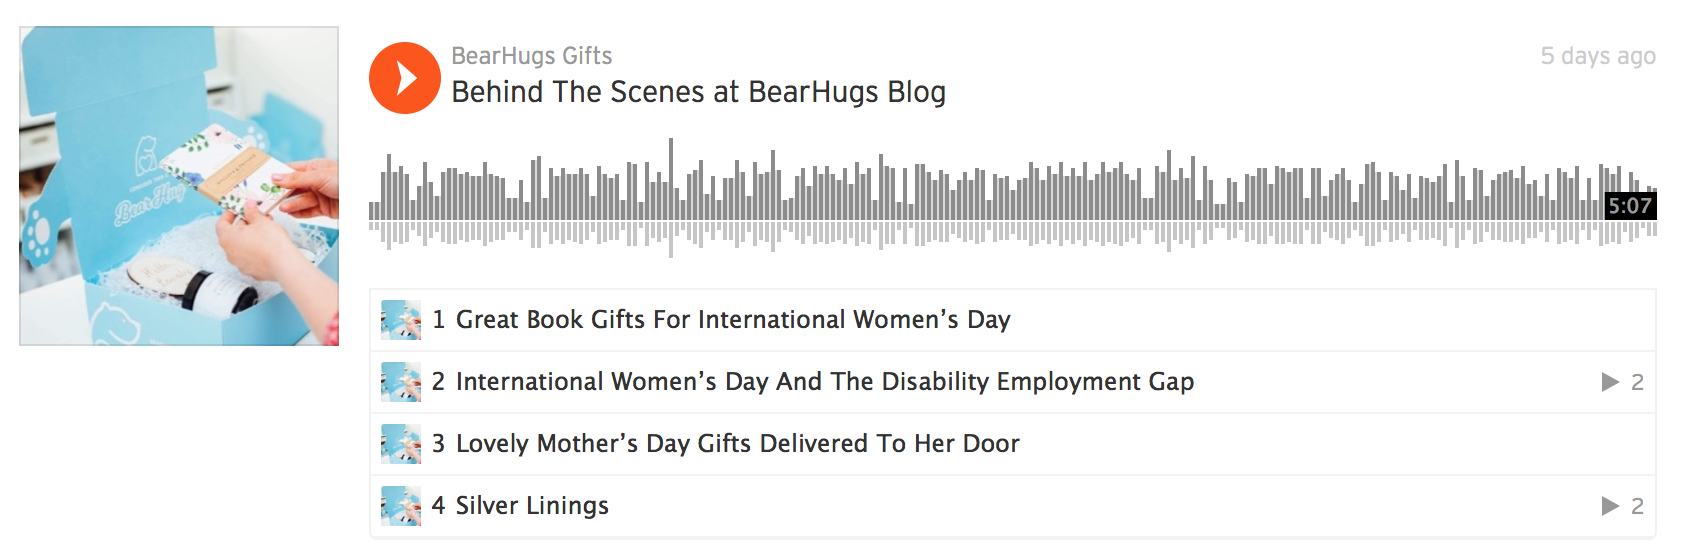 BearHugs Behind the Scenes Blog Recordings on Soundcloud.png